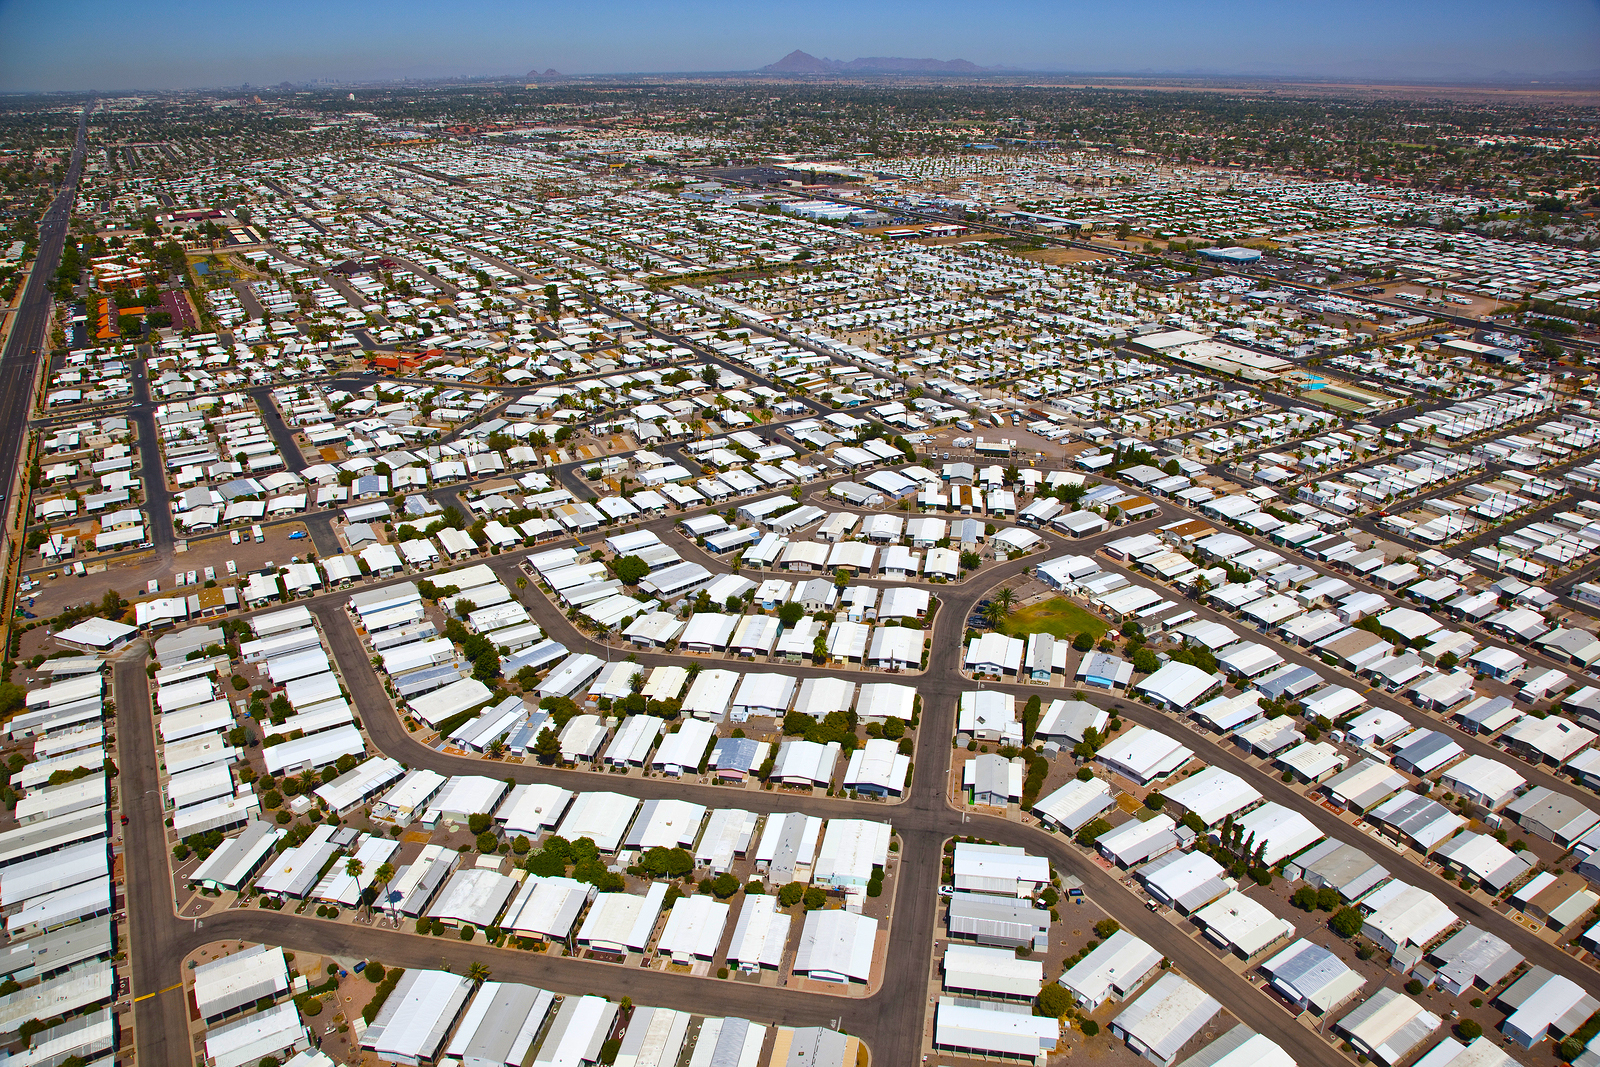 Newmark Homes prepares to build new manufactured homes in Arizona.